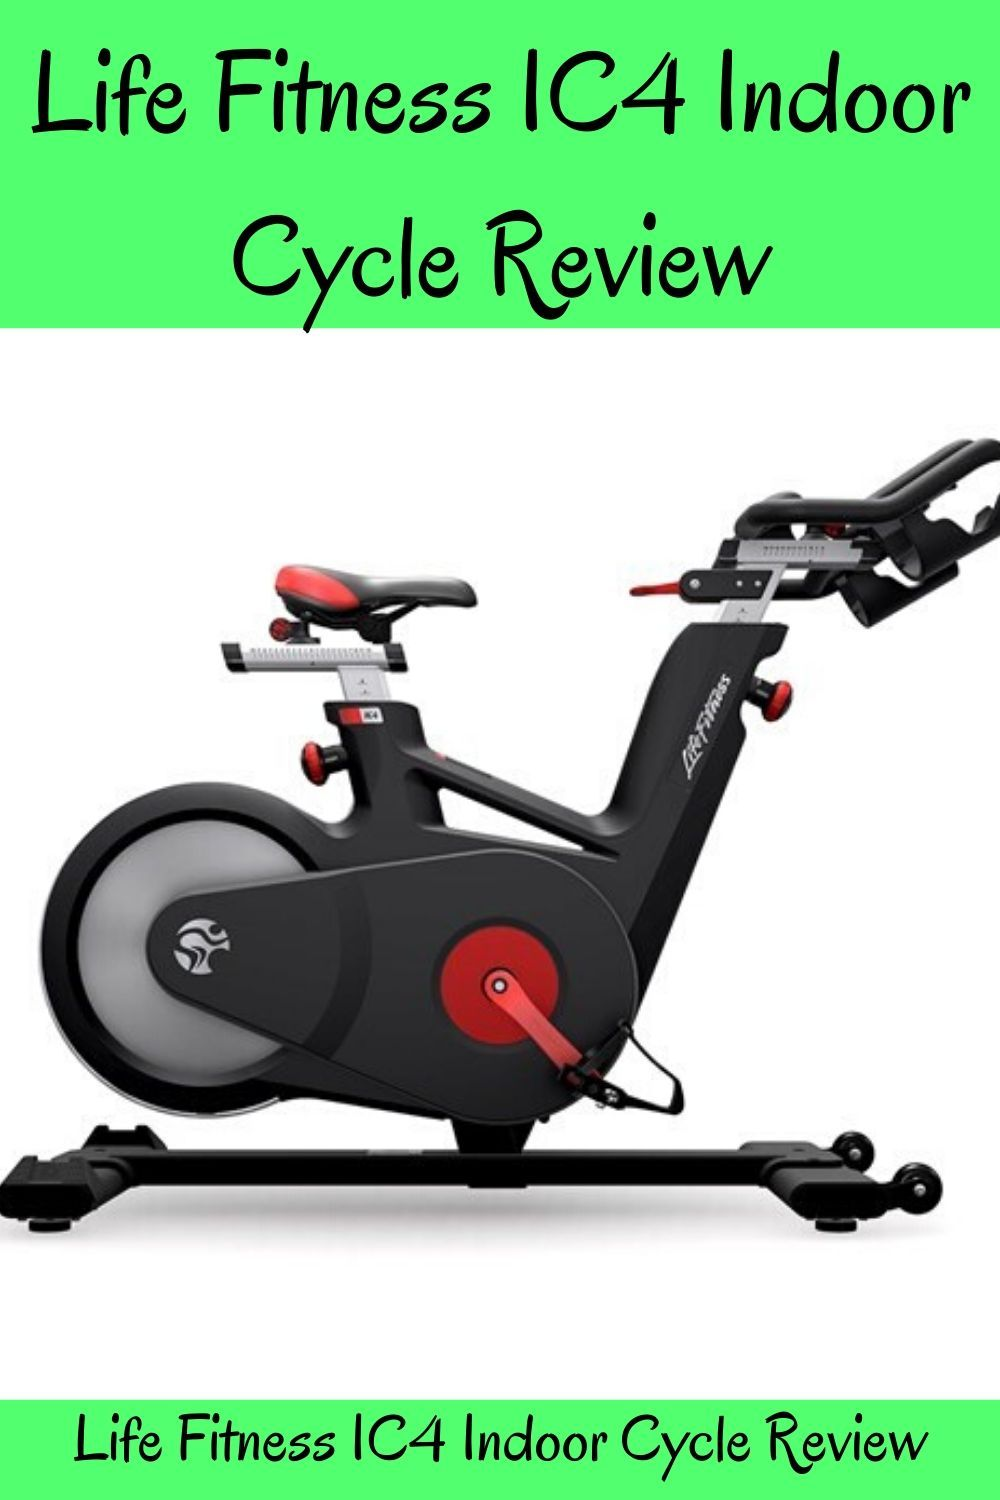 Life Fitness Ic4 Indoor Cycle Review Fit Life Fitness Life